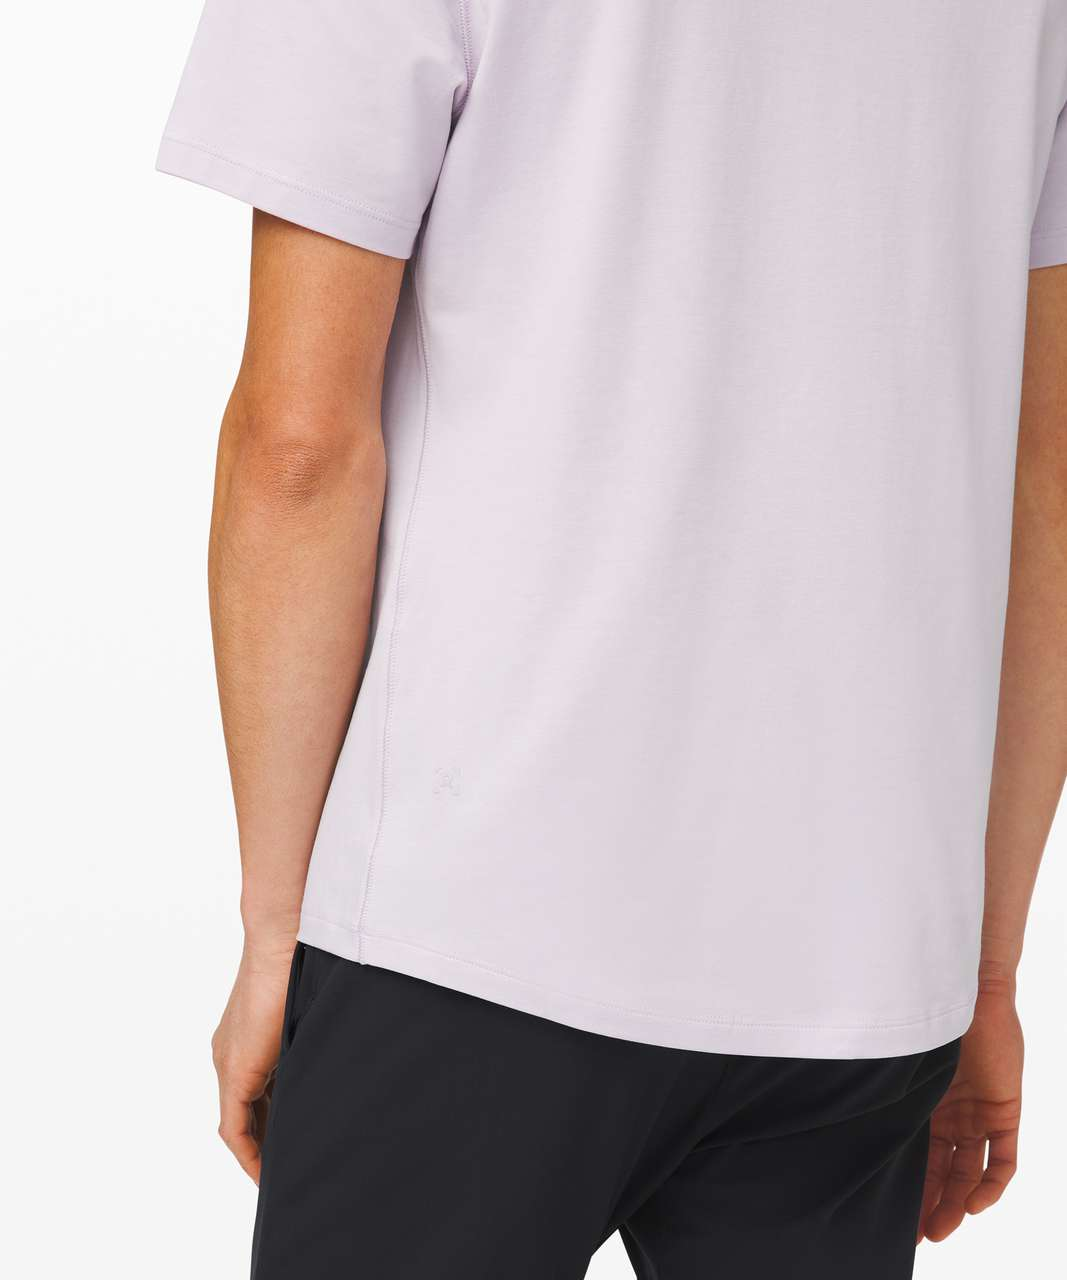 Lululemon 5 Year Basic Tee - Faint Lavender